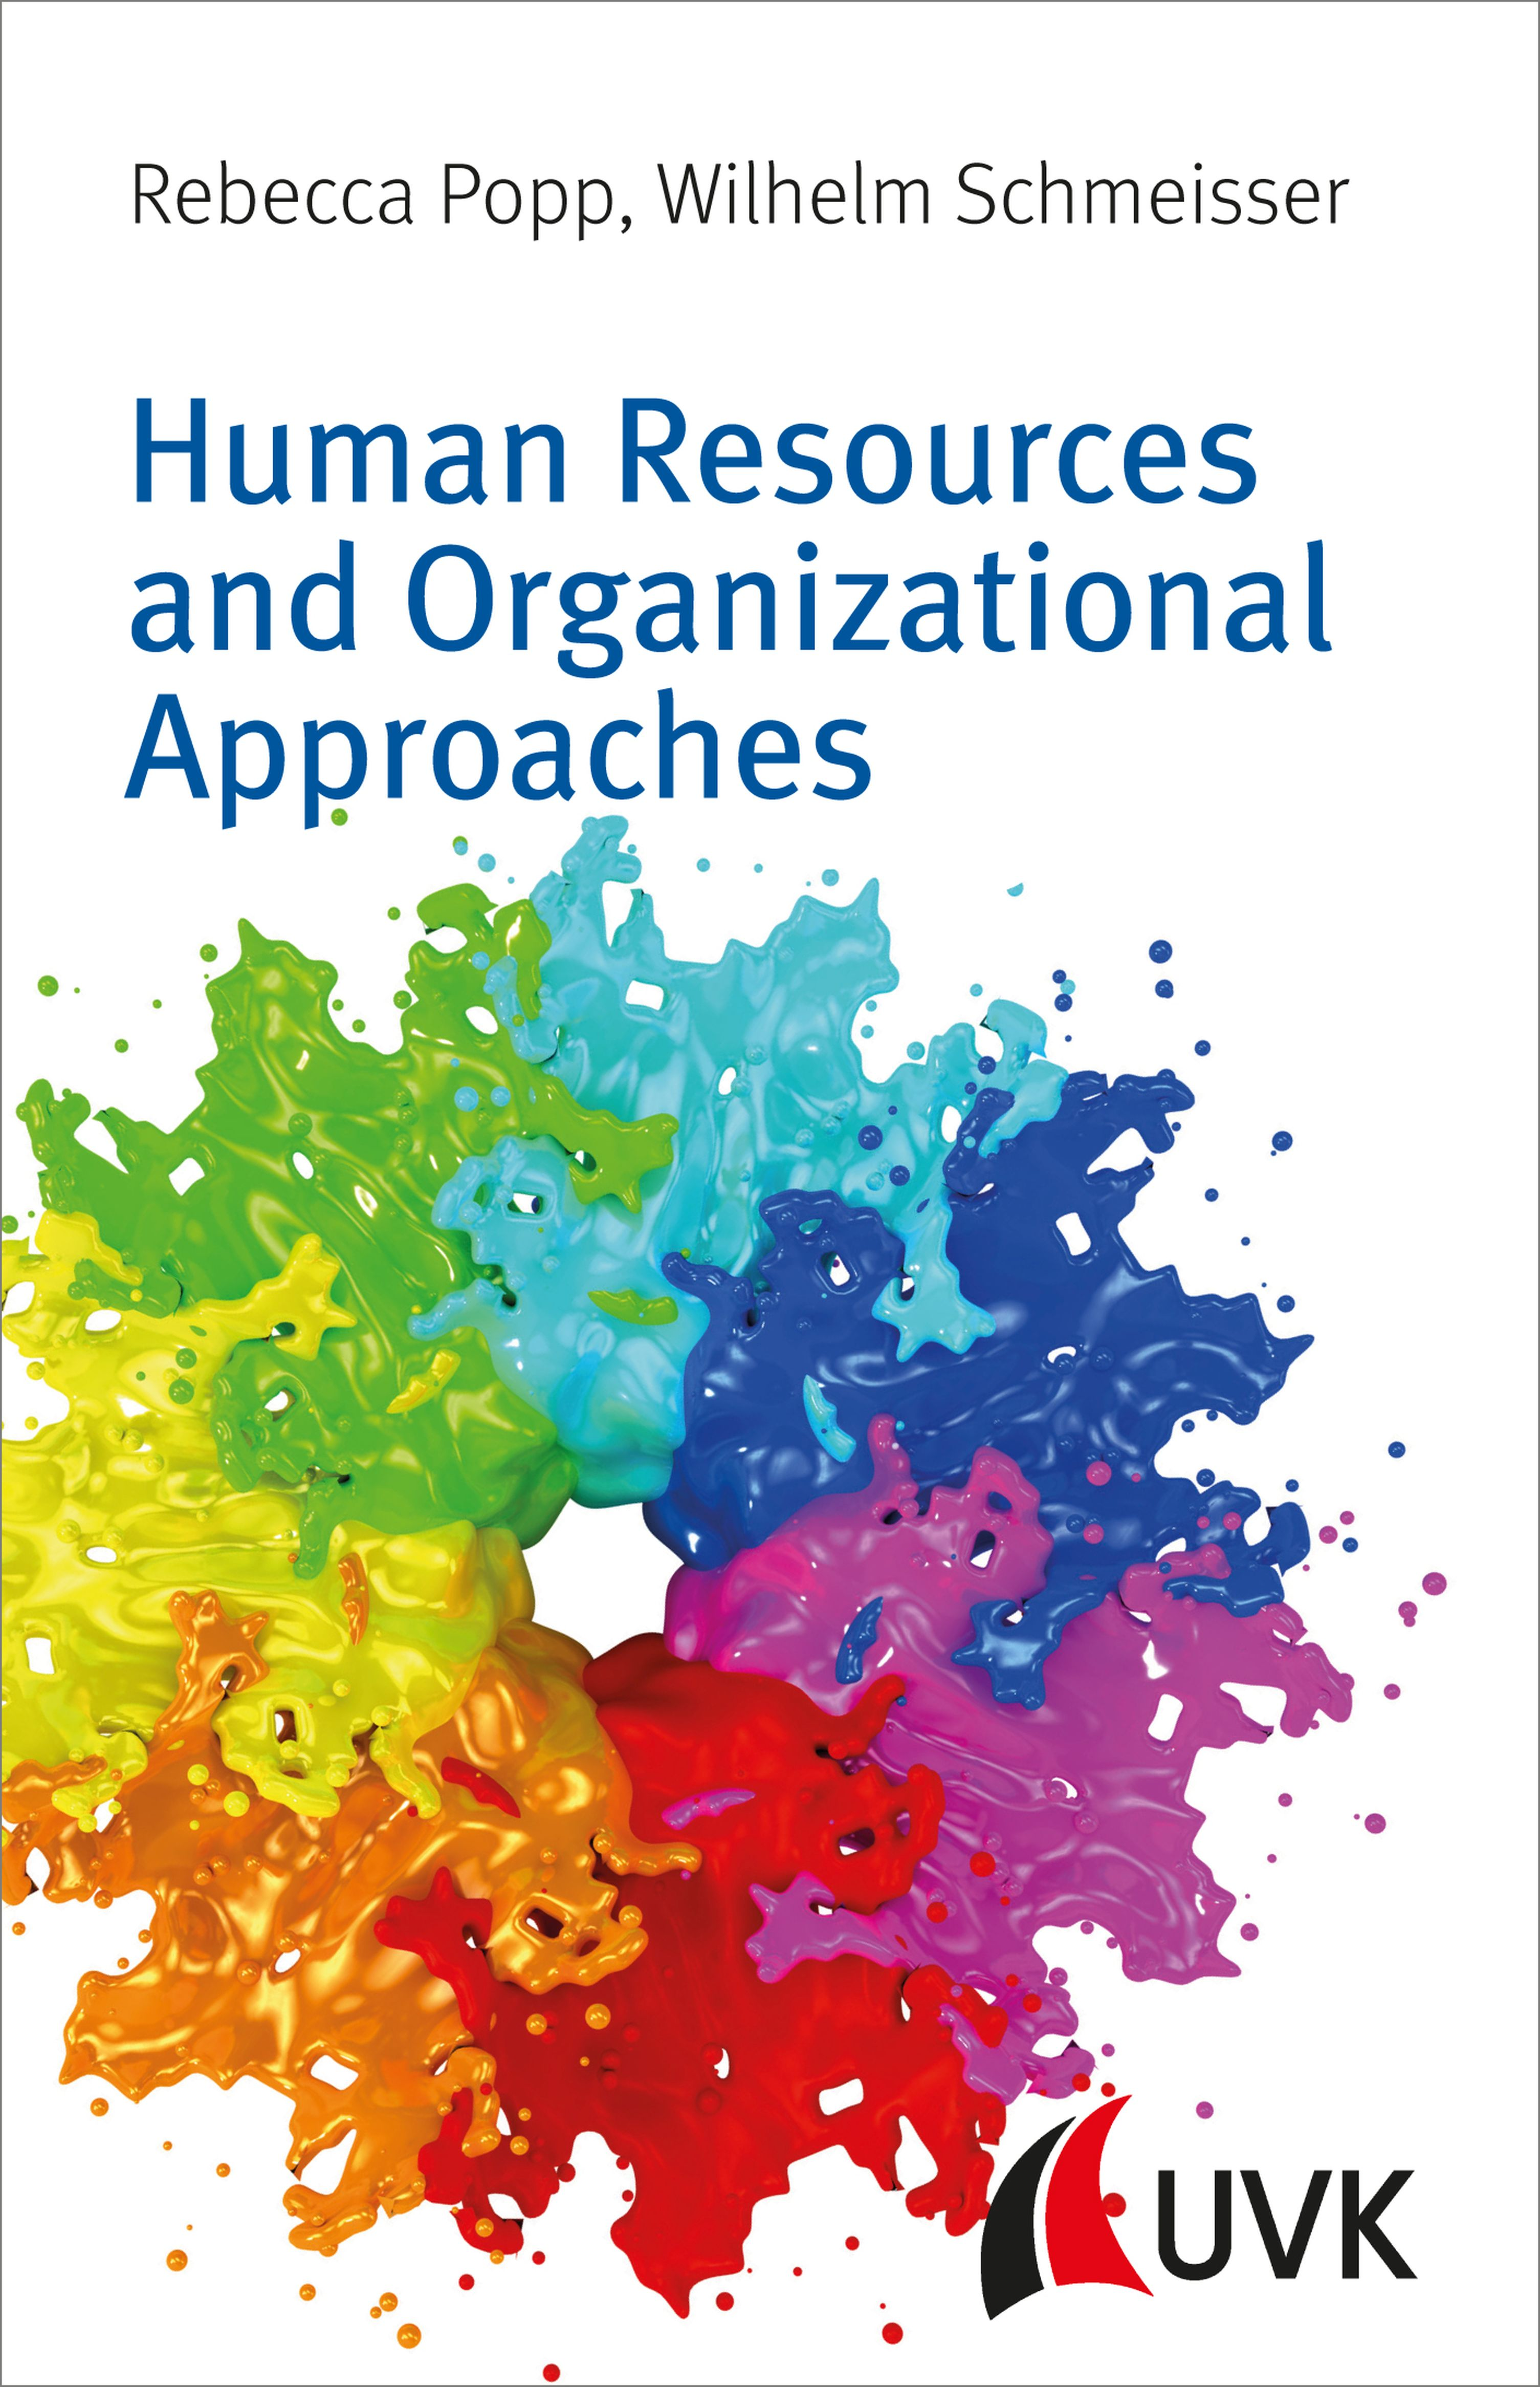 Wilhelm Schmeisser Human Resources and Organizational Approaches